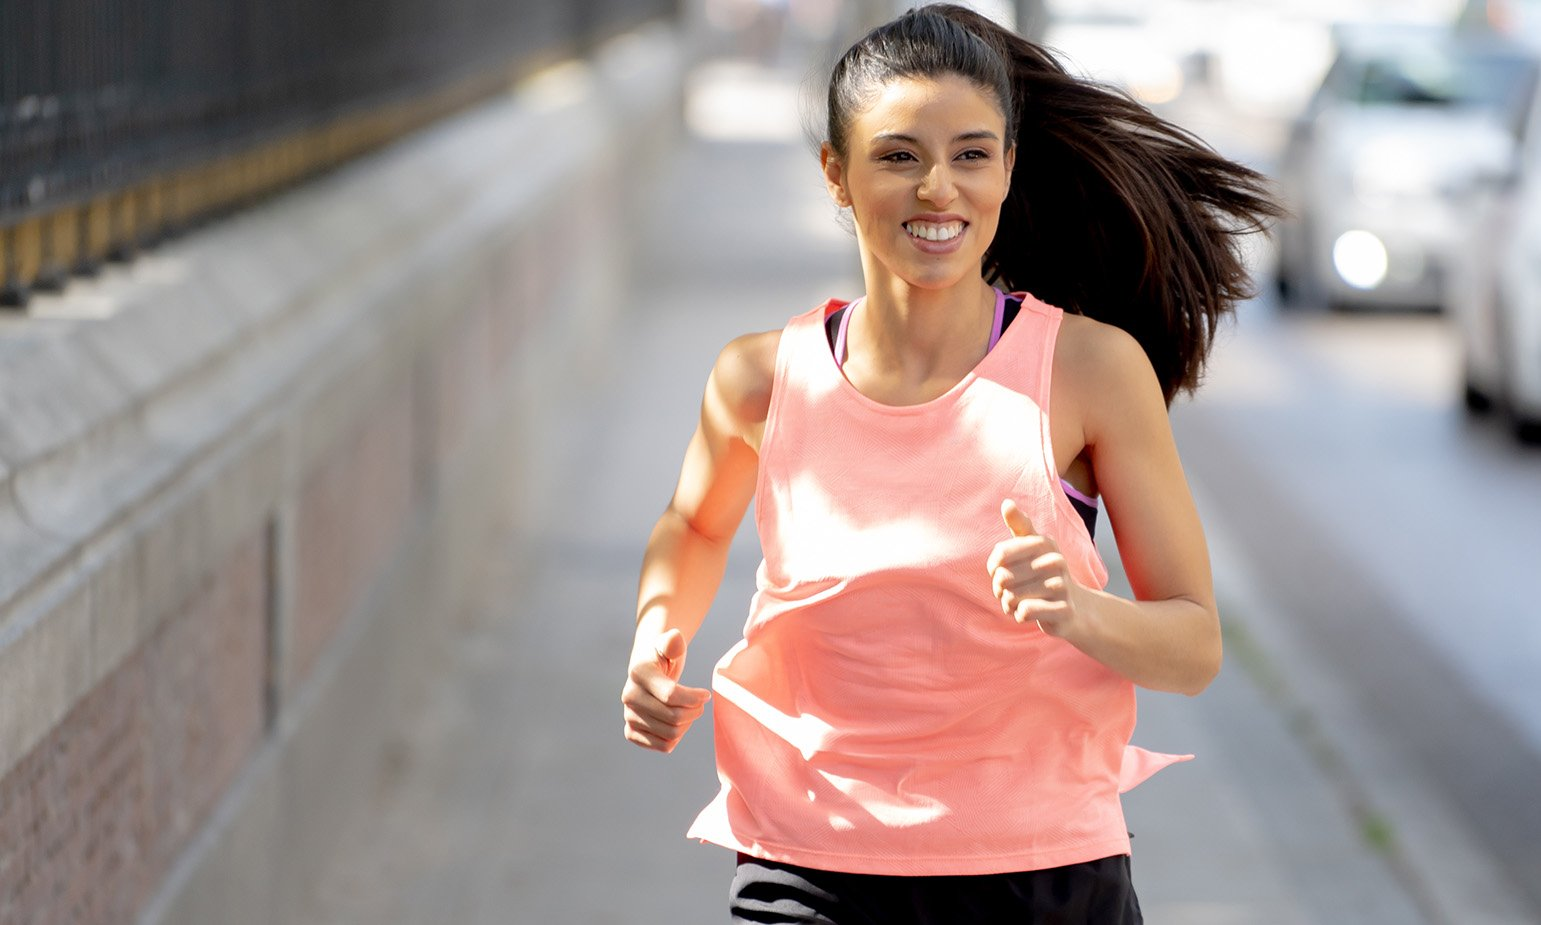 Want to stay fit at all ages? 6 tips inside